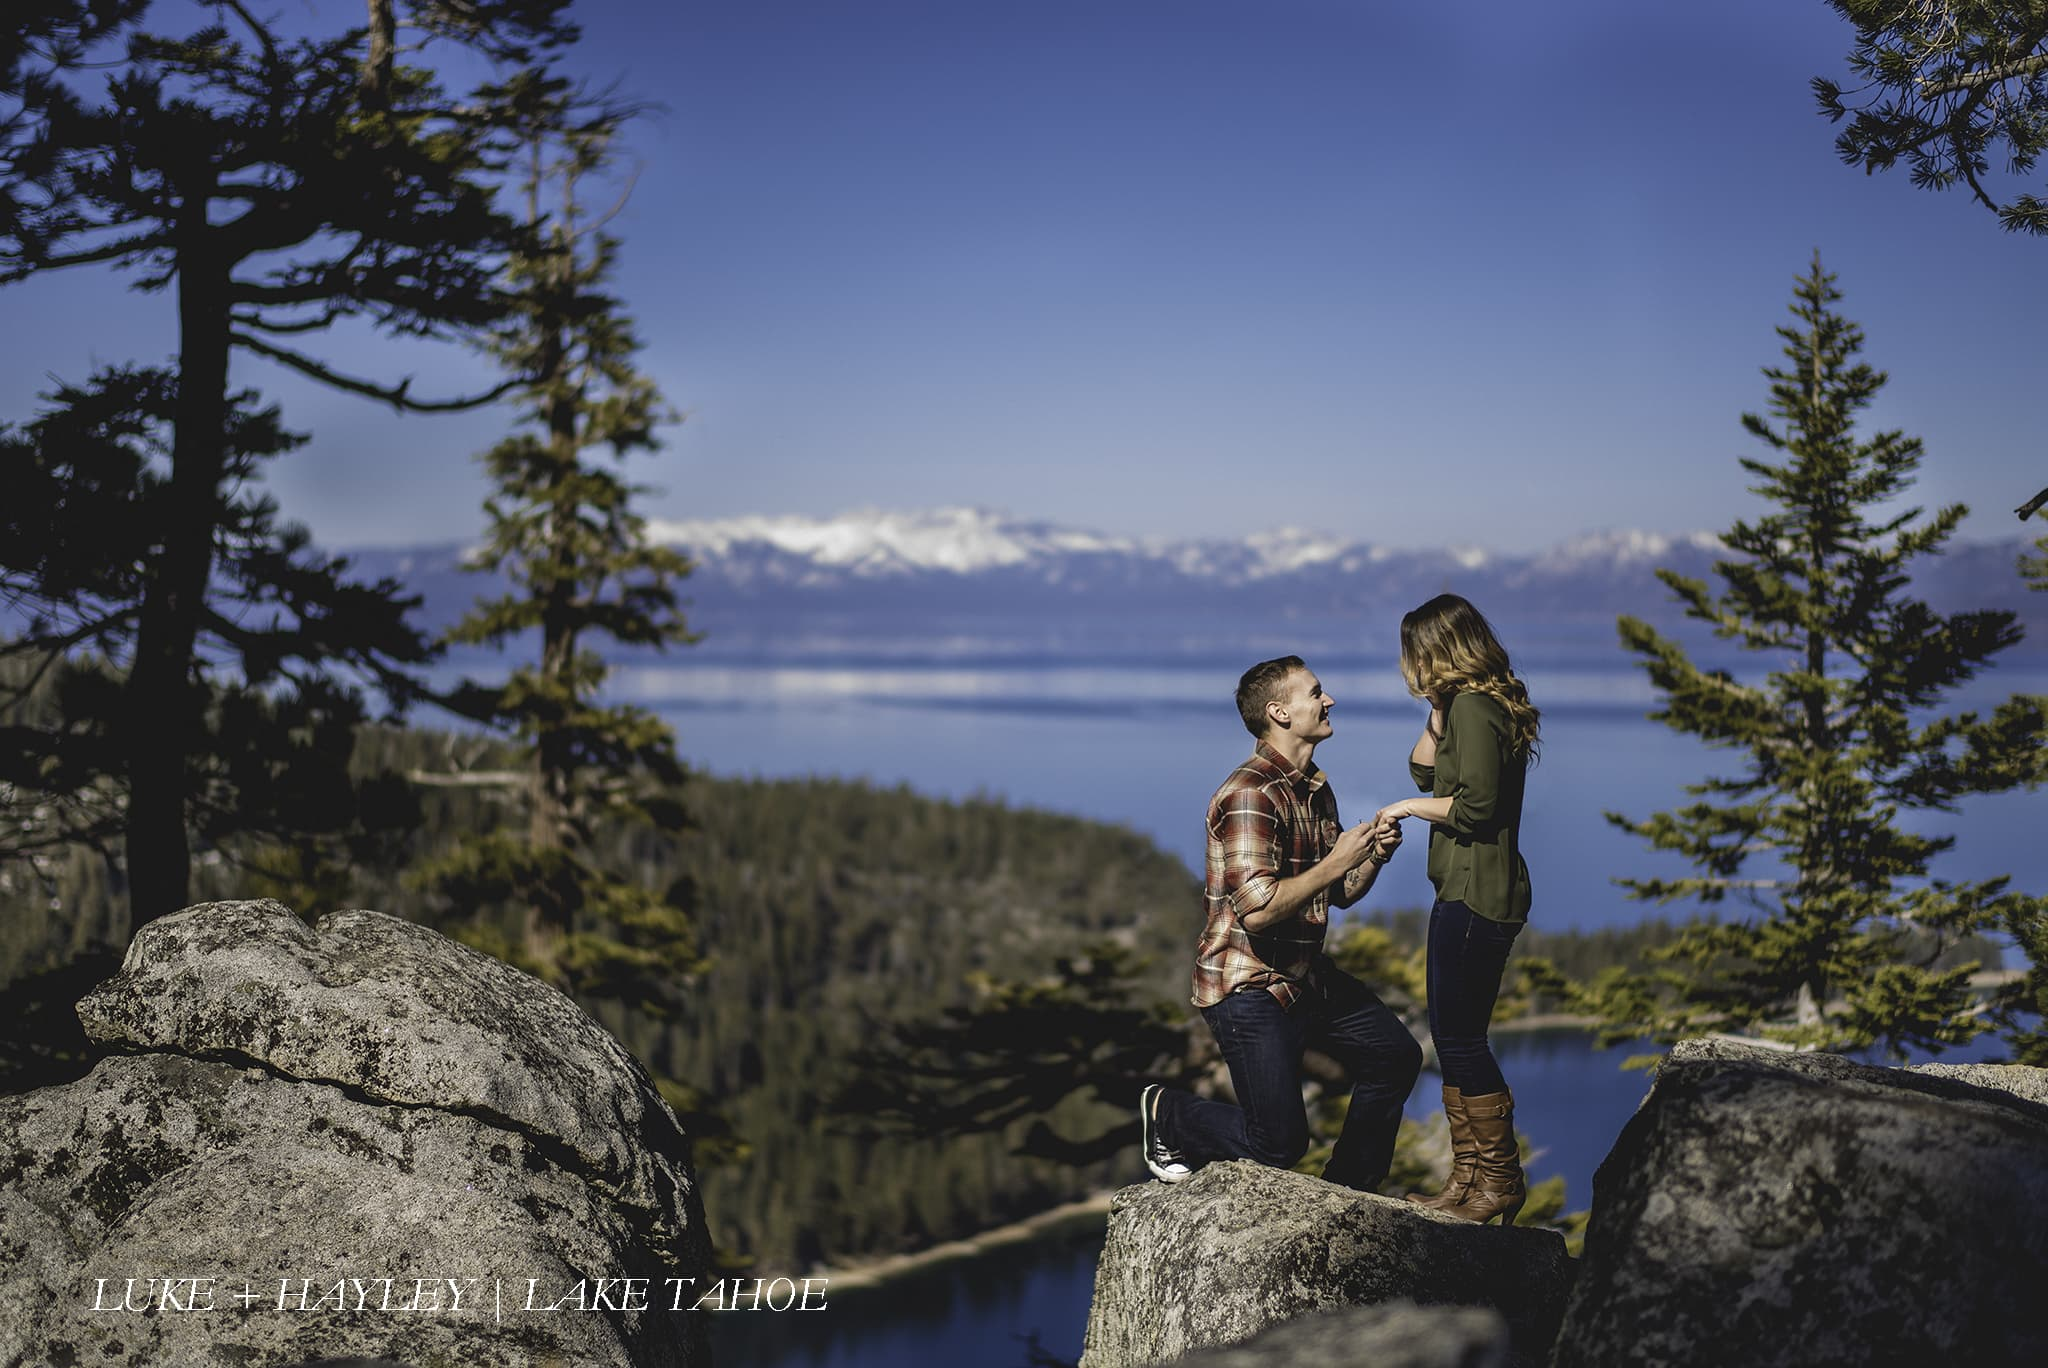 Lake Tahoe Engagement Photographer - Studio 22 Photography